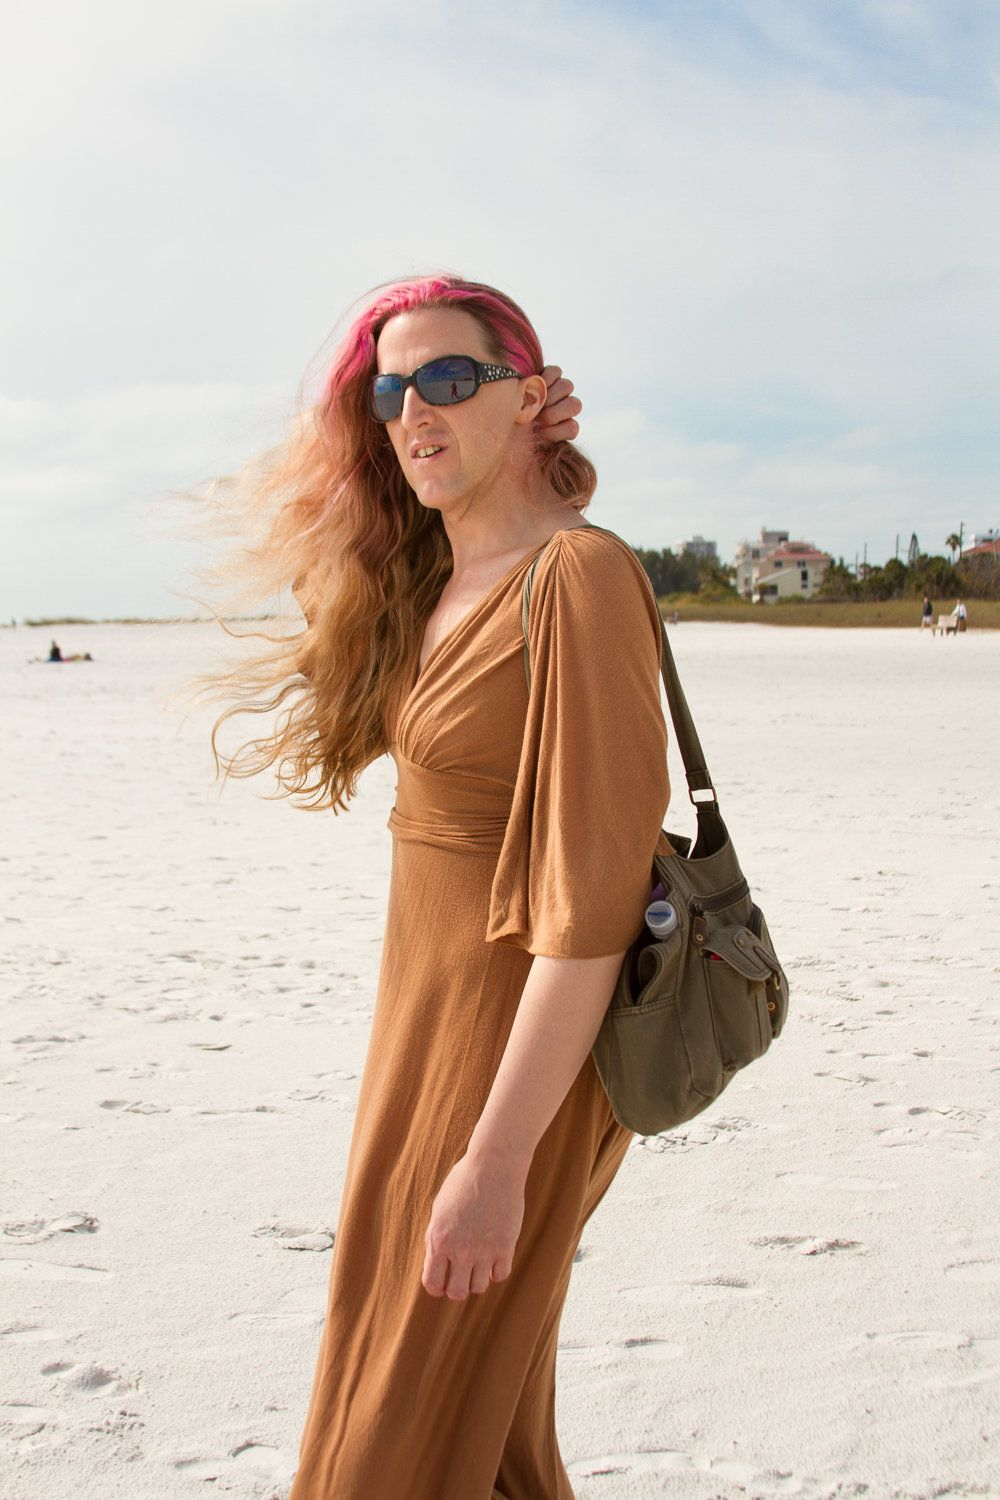 Puberty At 33: A Trans Woman's Mid-Life Coming Of